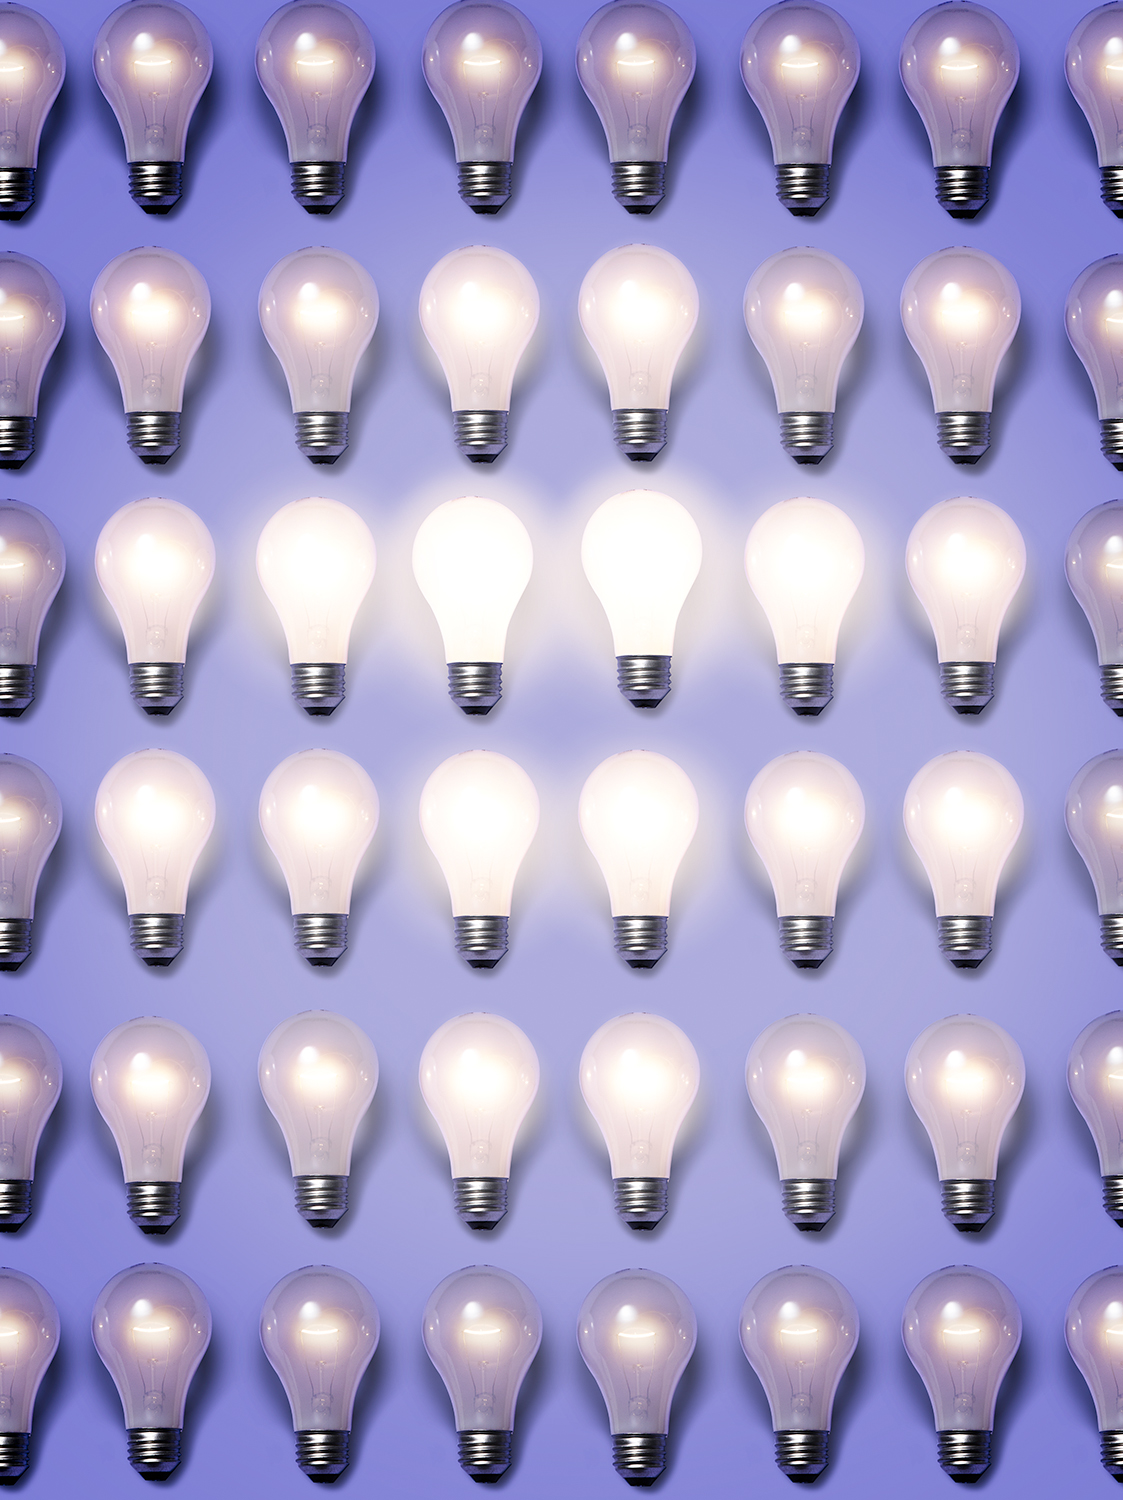 03_LightBulbs_medRes.jpg